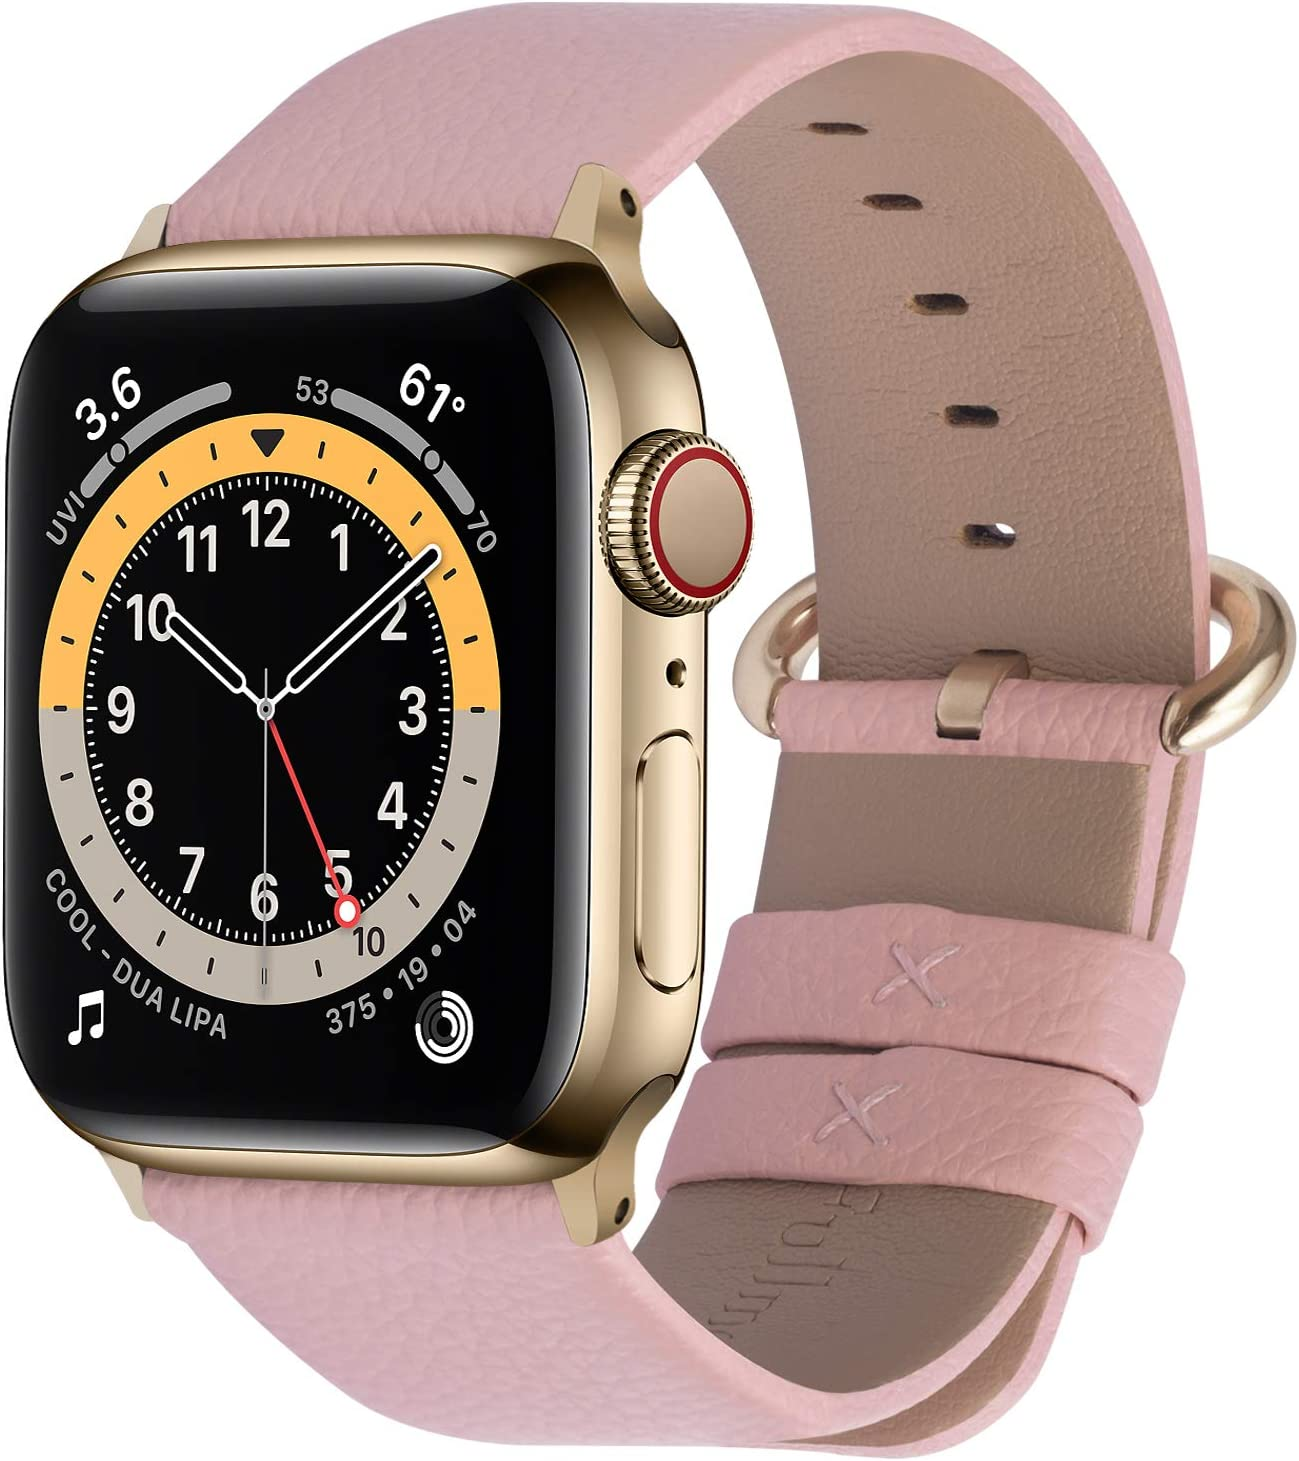 Fullmosa Compatible Apple Watch Band 38mm 40mm 42mm 44mm Leather Compatible iWatch Band/Strap Compatible Apple Watch SE & Series 6 5 4 3 2 1, 38mm 40mm Soft Pink + Golden Buckle